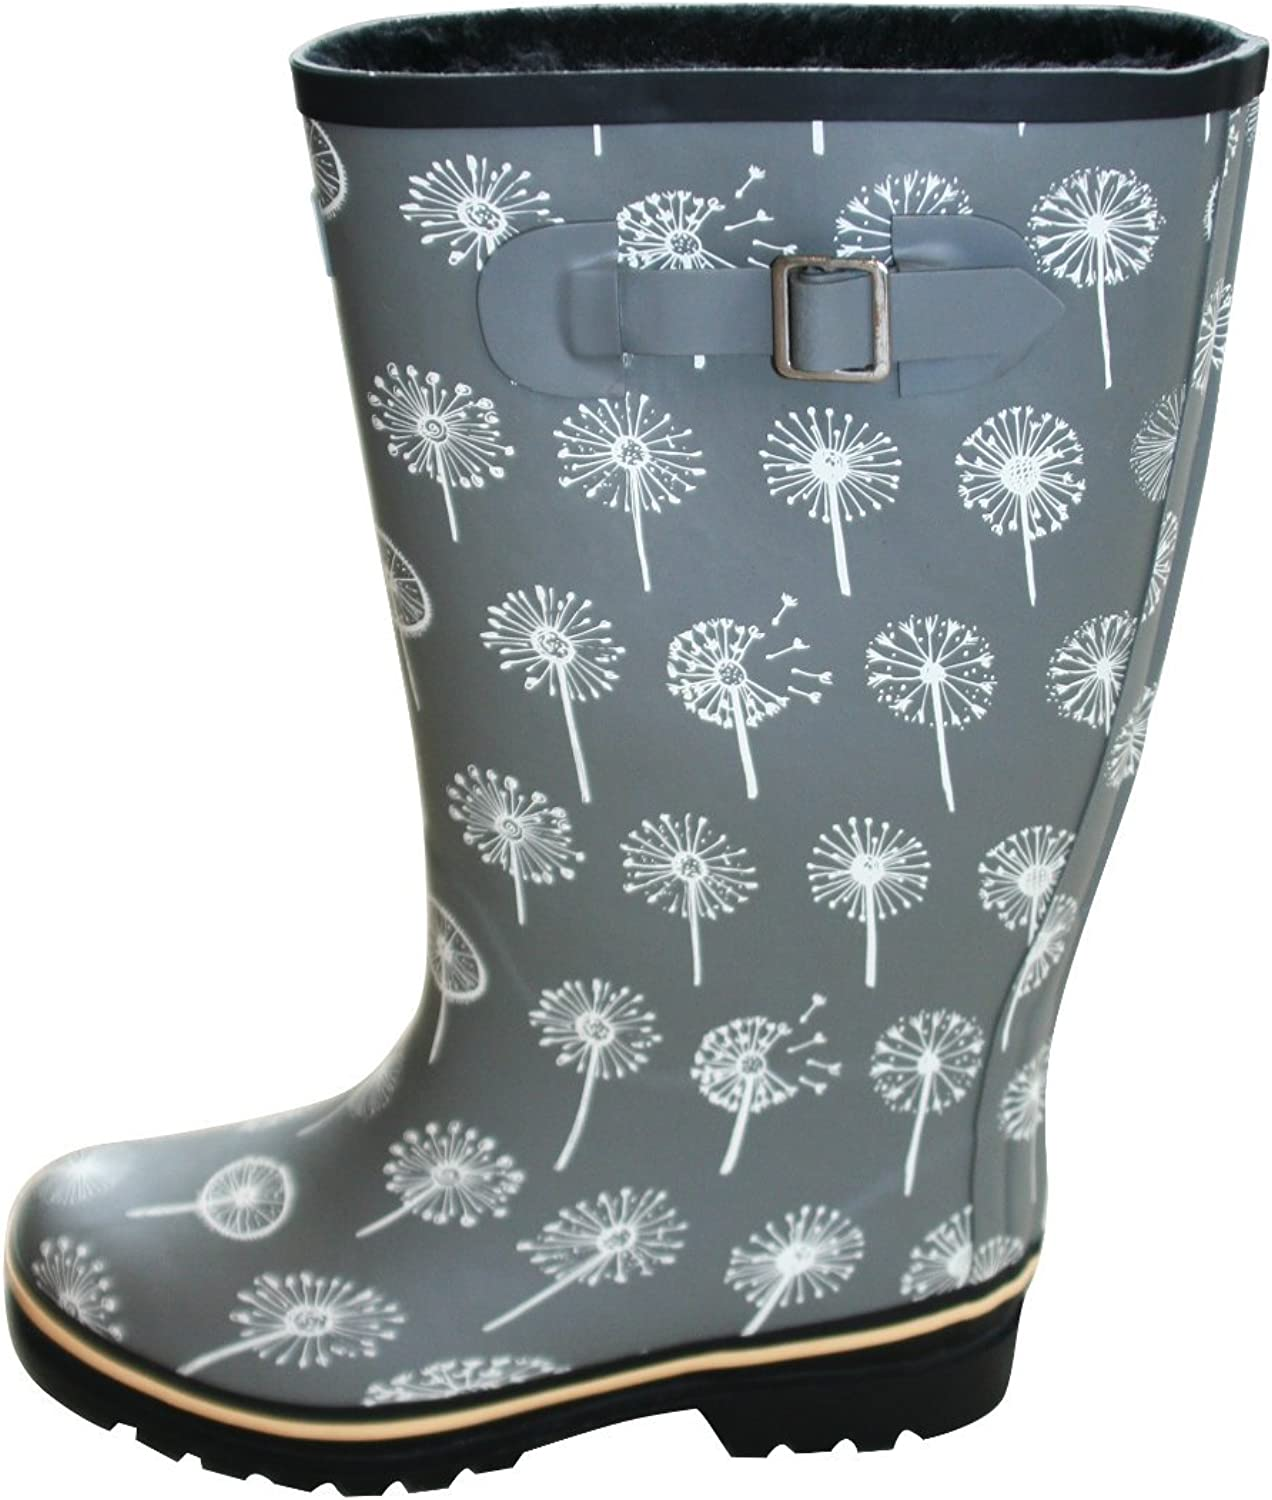 Jileon Wide Calf All Weather Durable Rubber Rain Boots for Women-Soft & Fluffy Lining on The Inside–Fits Calf Sizes Up to 18 Inches